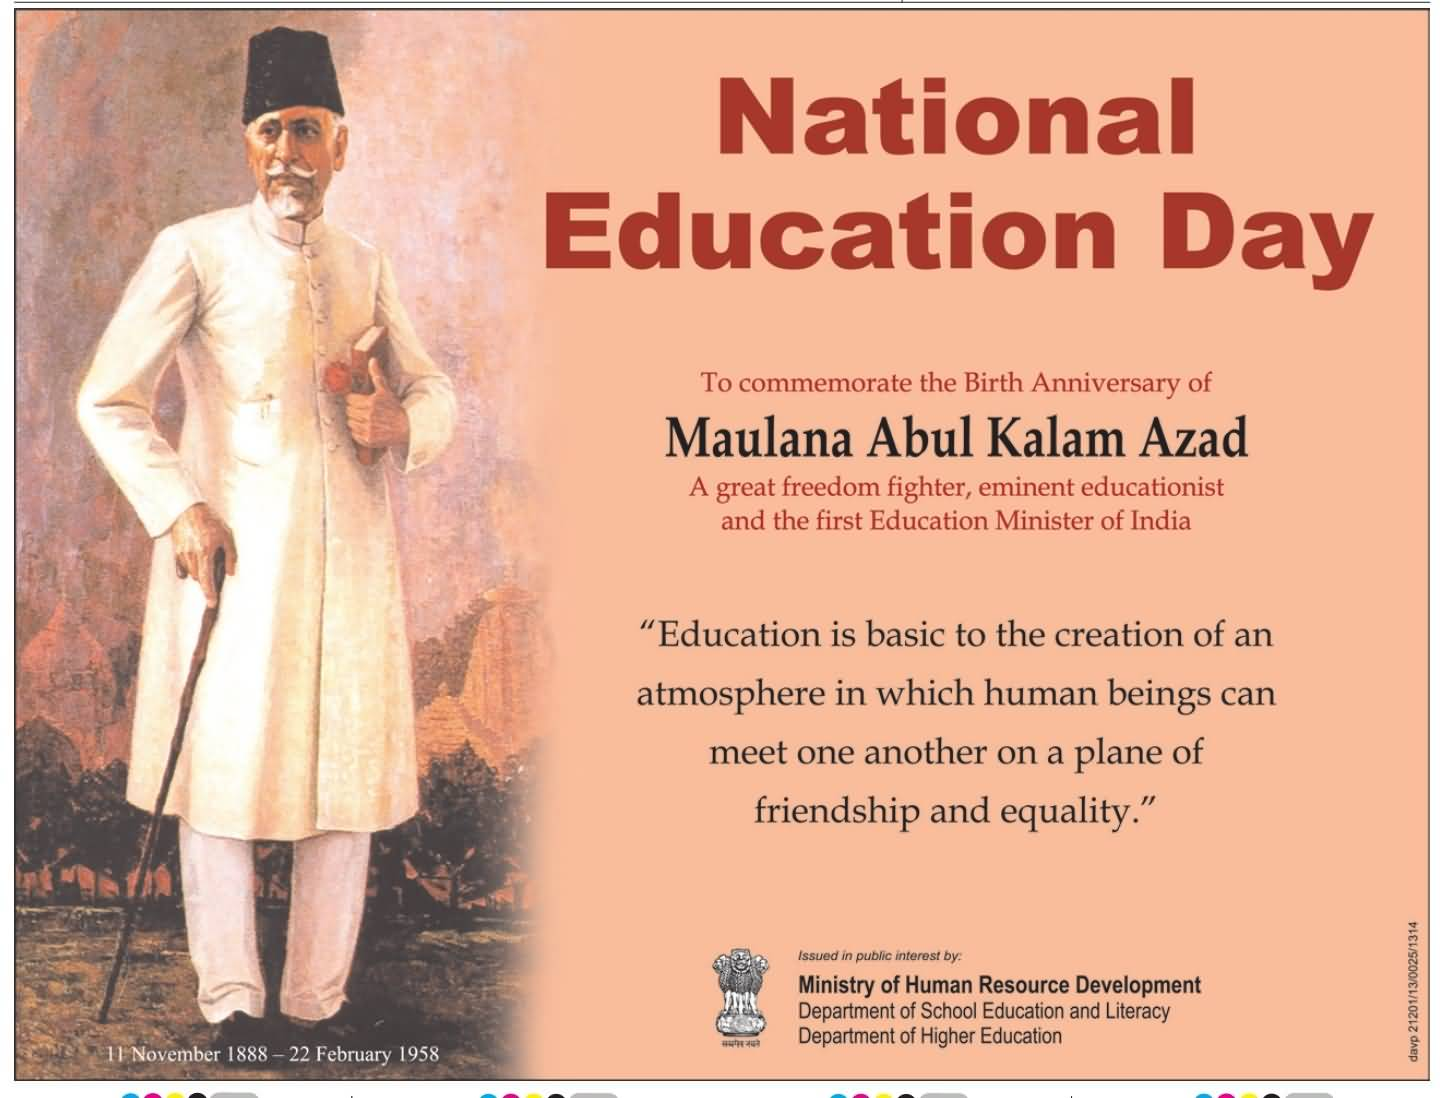 We Celebrate The National Education Day On November 11th